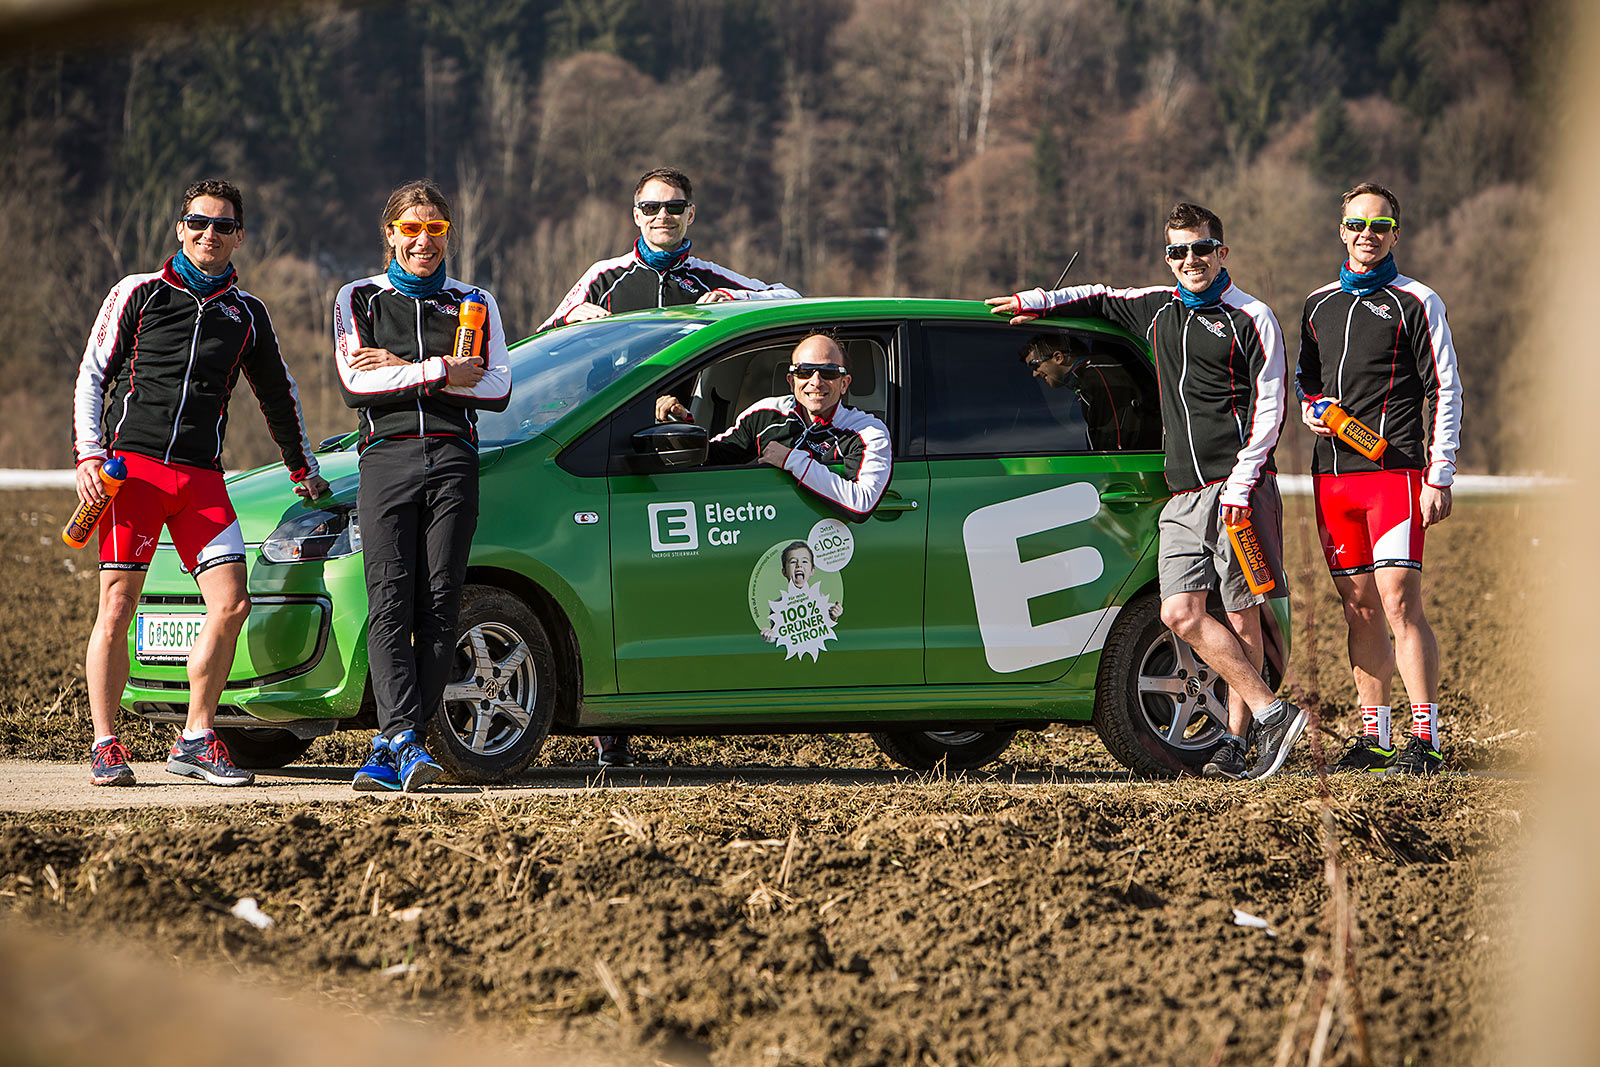 The Speed Project – Team Austria powered by Energie Steiermark © Gernot Eder